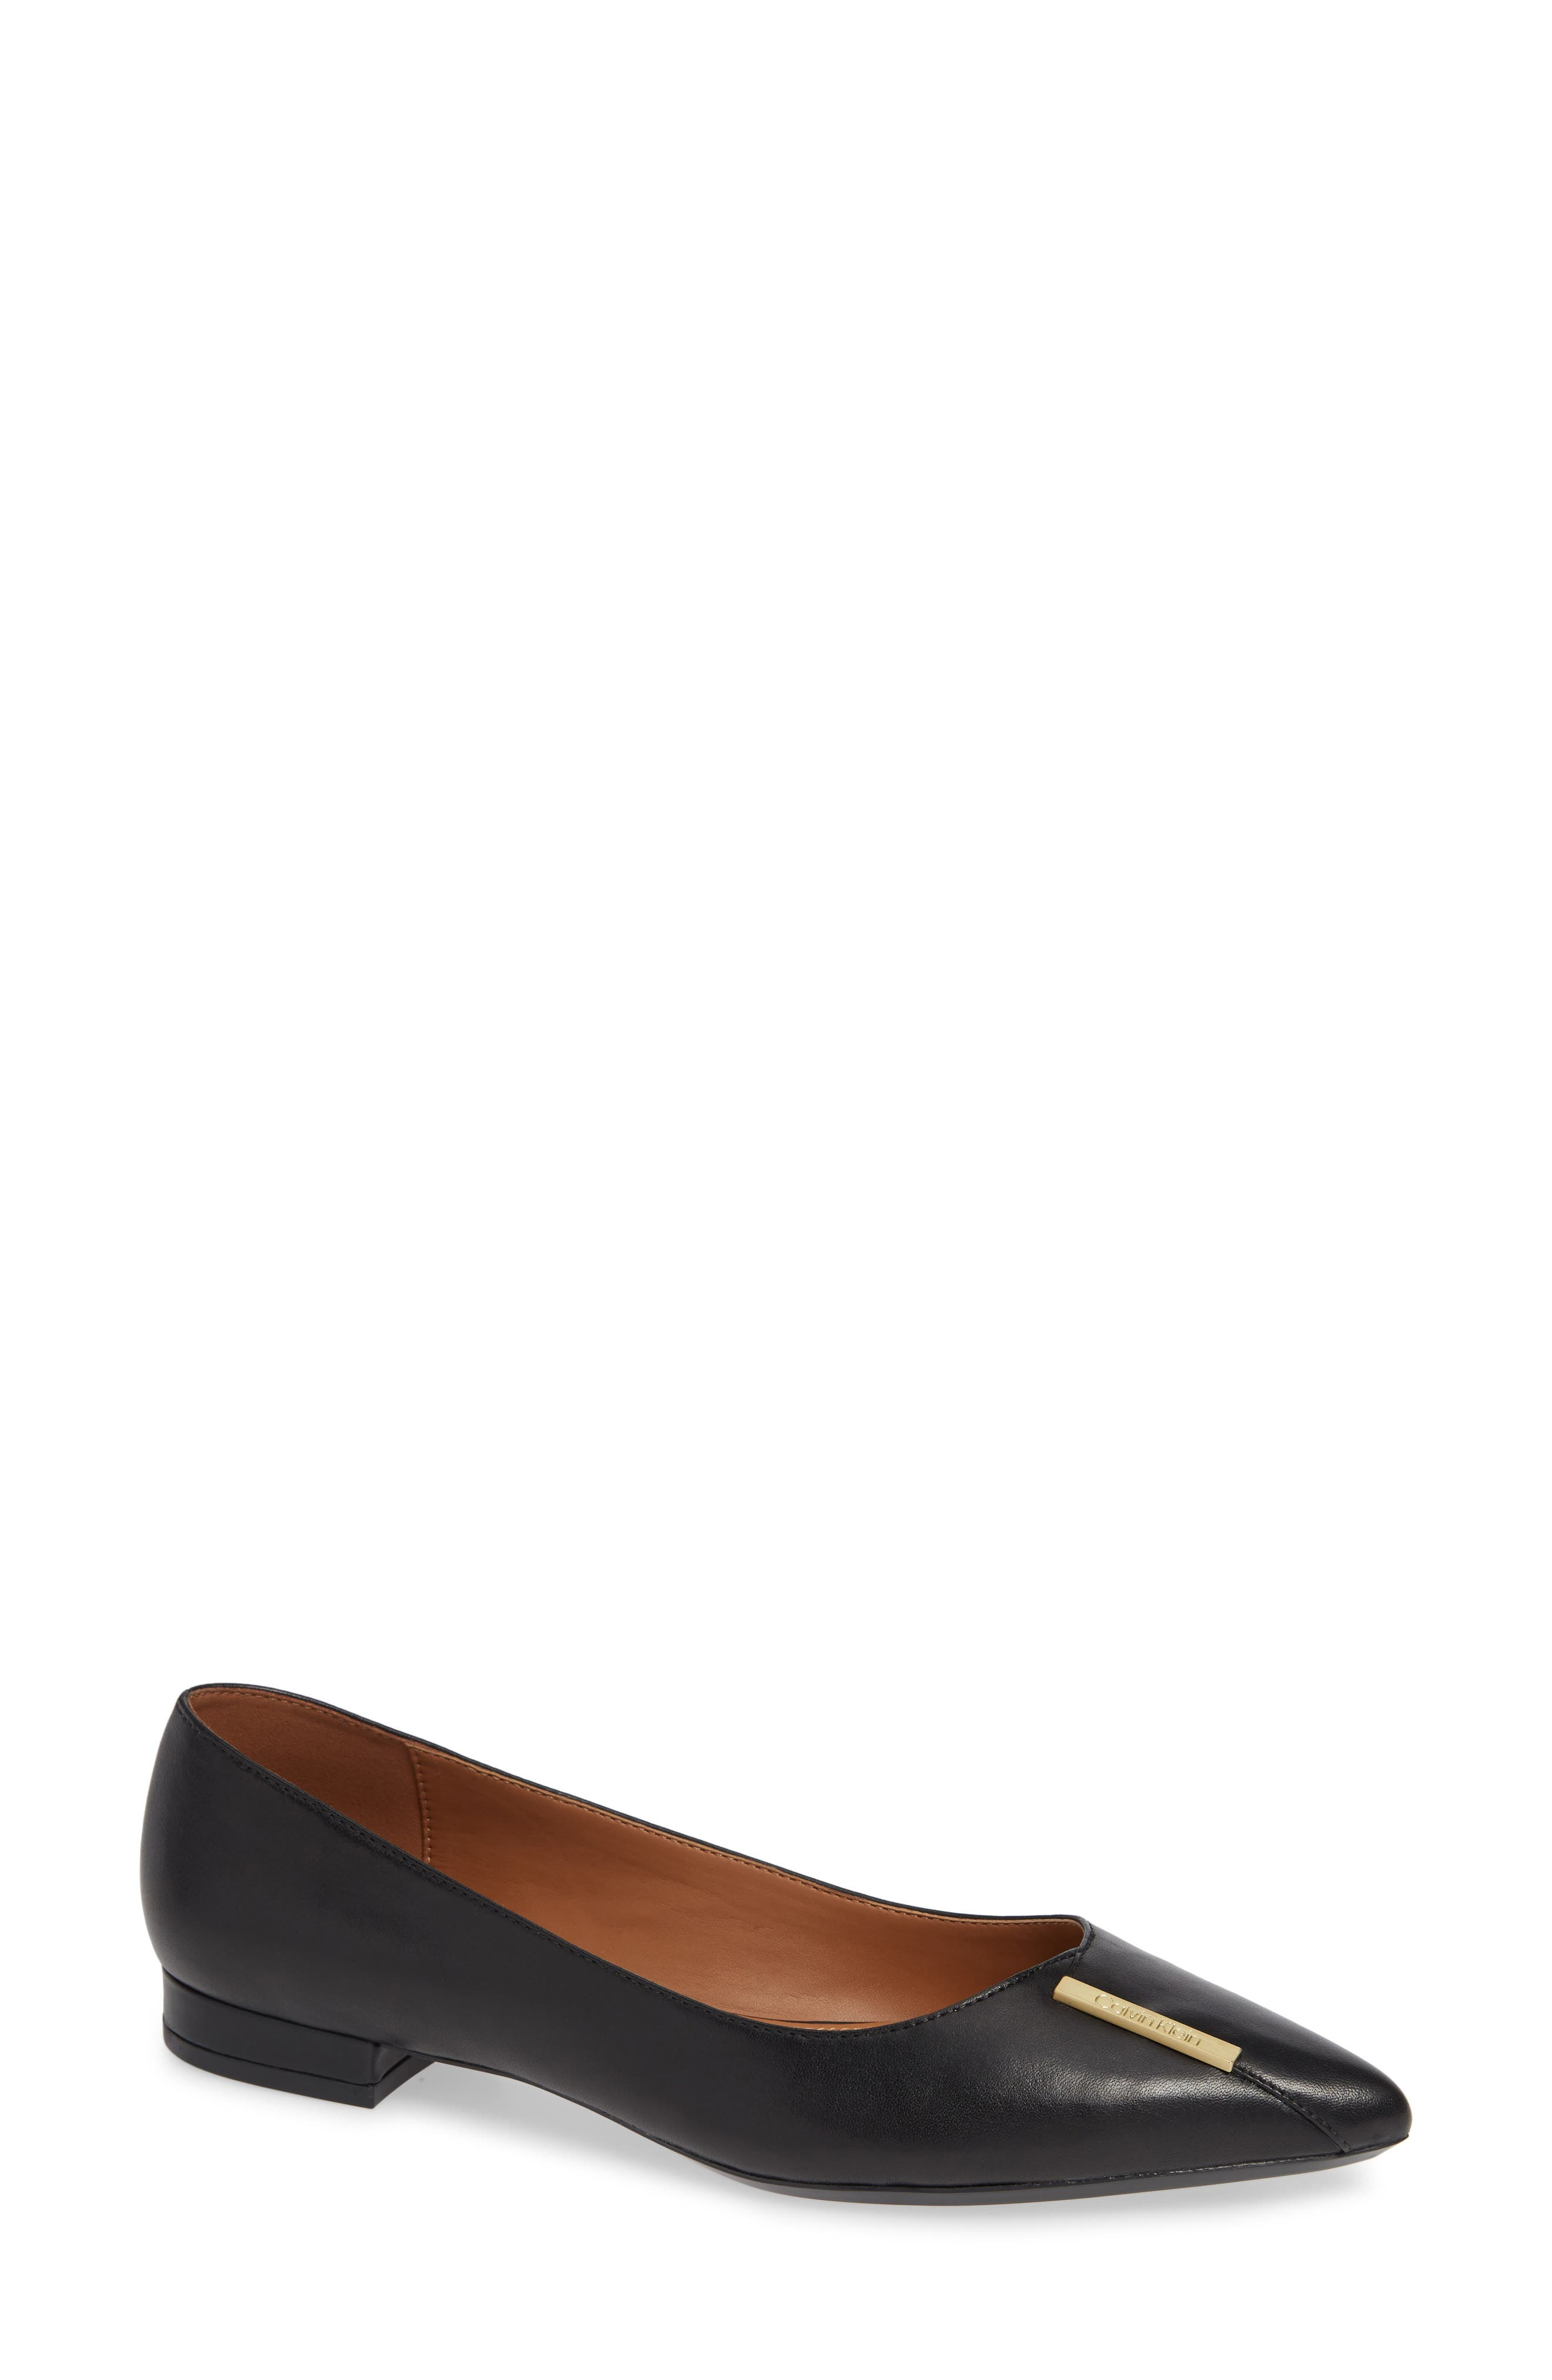 Arline Pointy Toe Flat,                             Main thumbnail 1, color,                             BLACK LEATHER